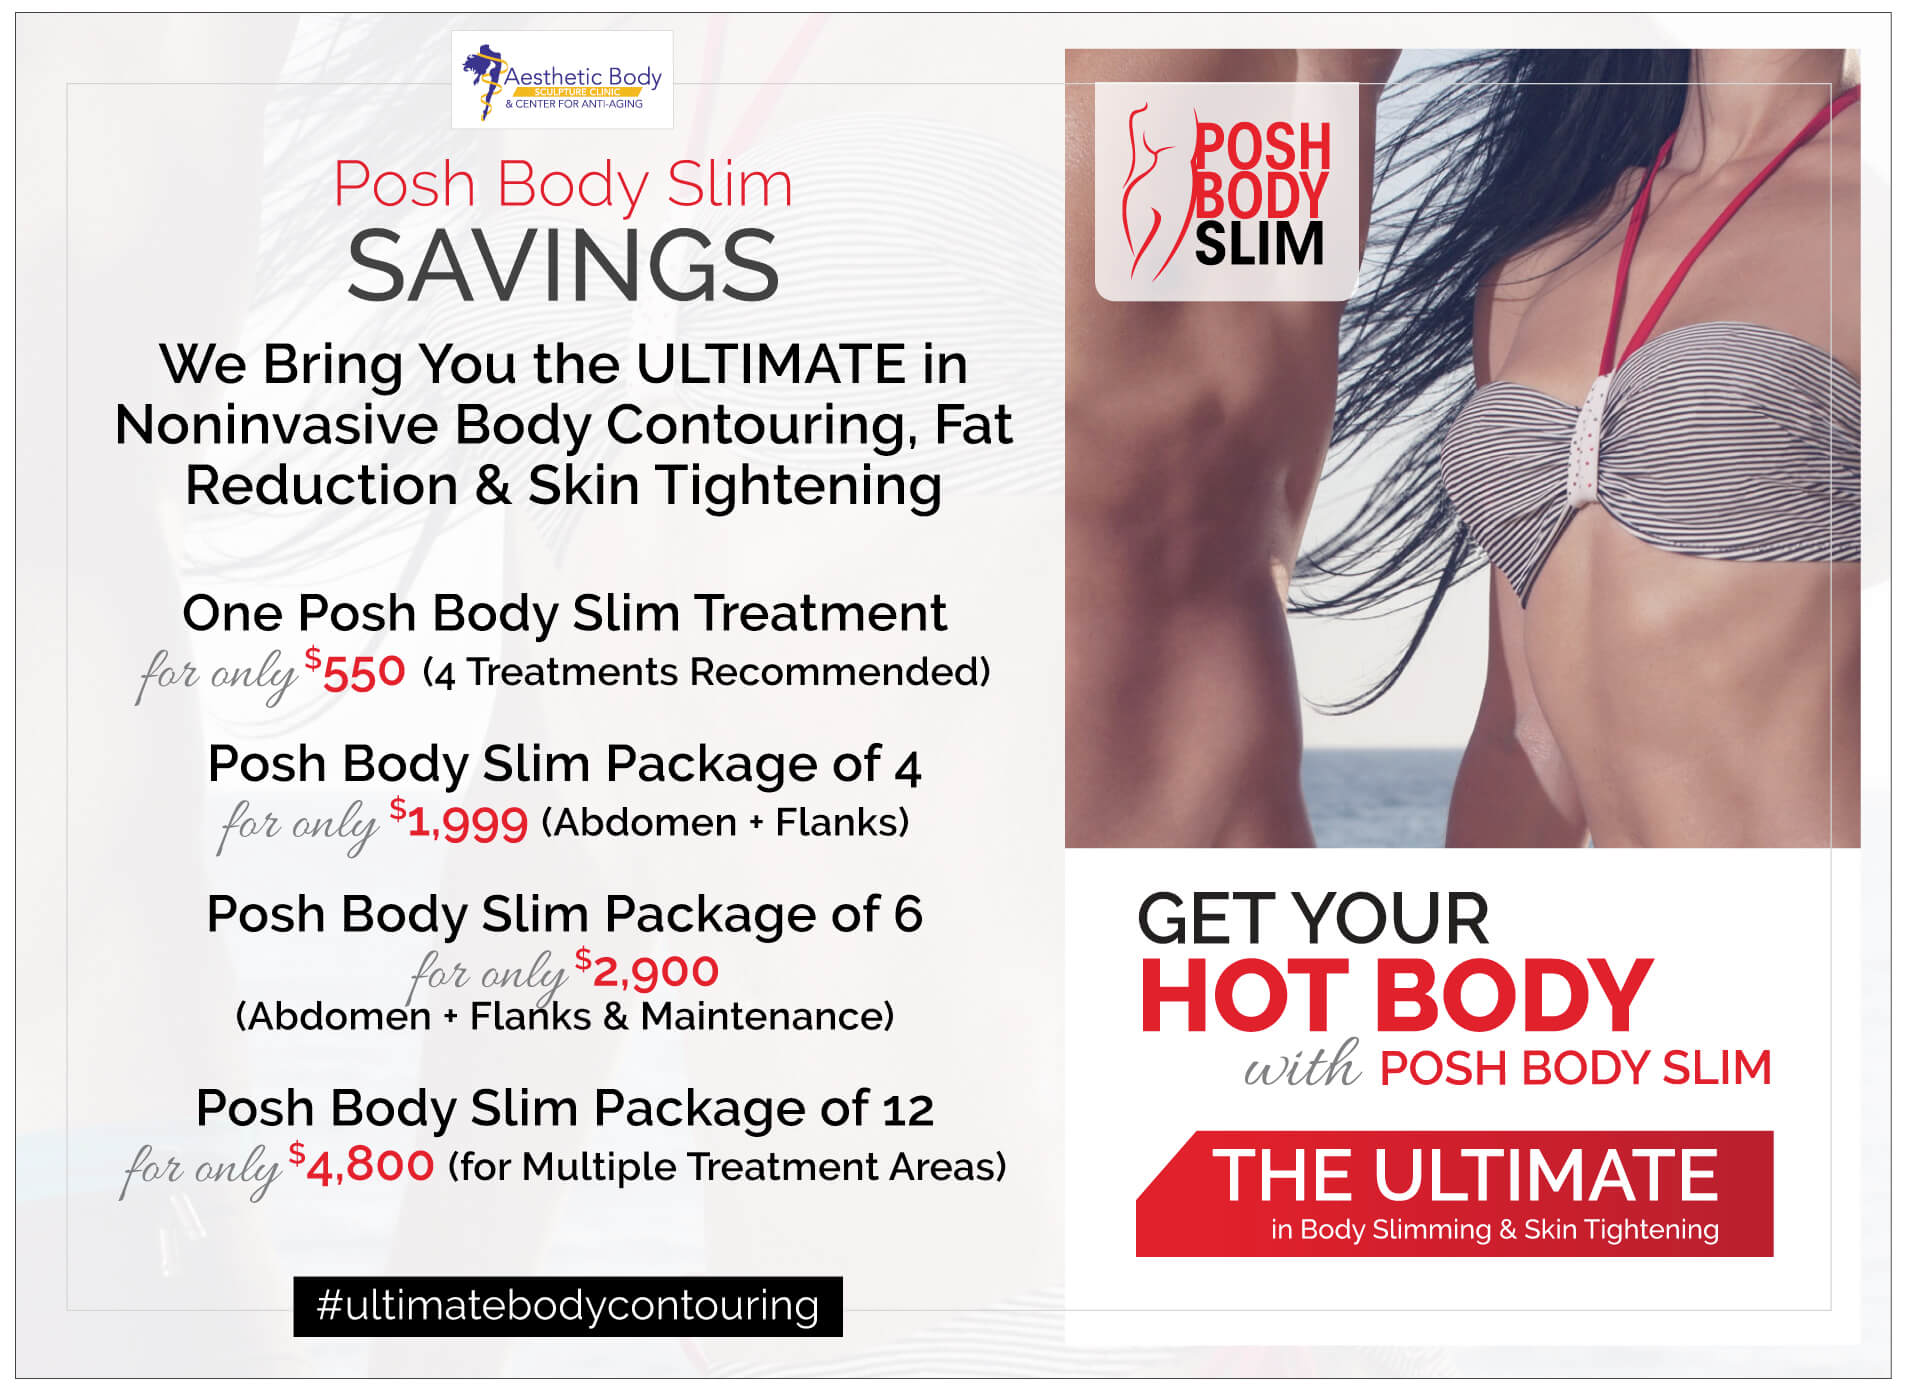 Monthly Aesthetic Treatment Specials - Beauty Specials for Posh Body Slim Radiofrequency and Ultrasonic Cavitation